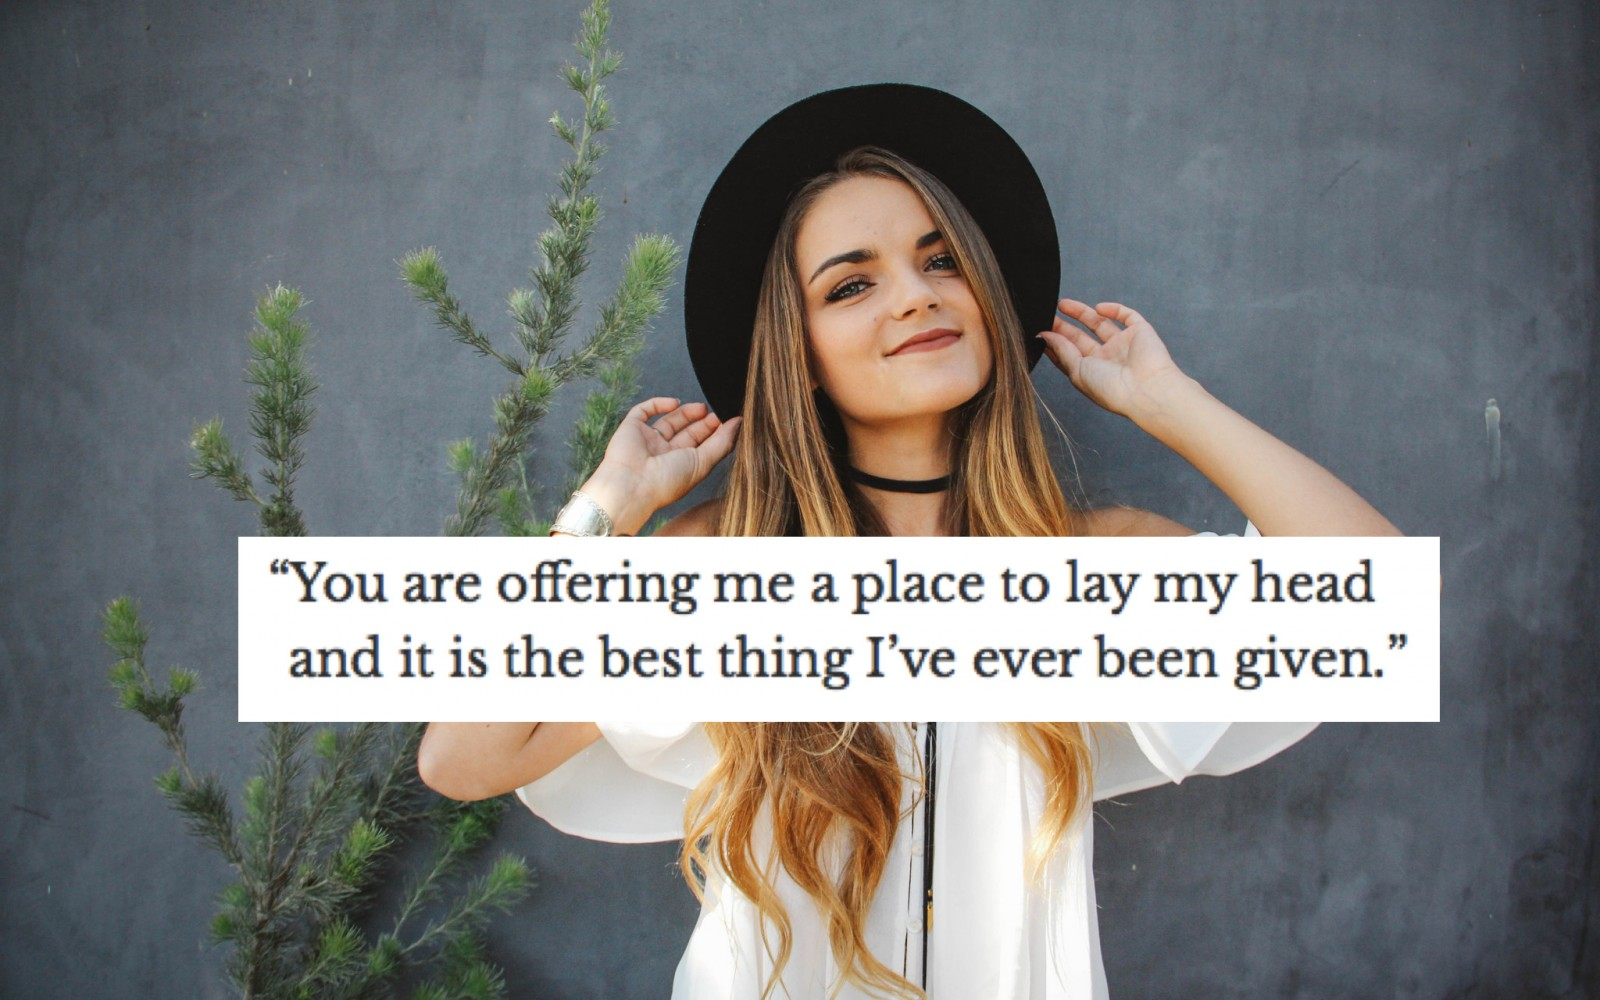 46 Fortesa Latifi Quotes To Remind You That Even On The Darkest Days There Is Still Hope